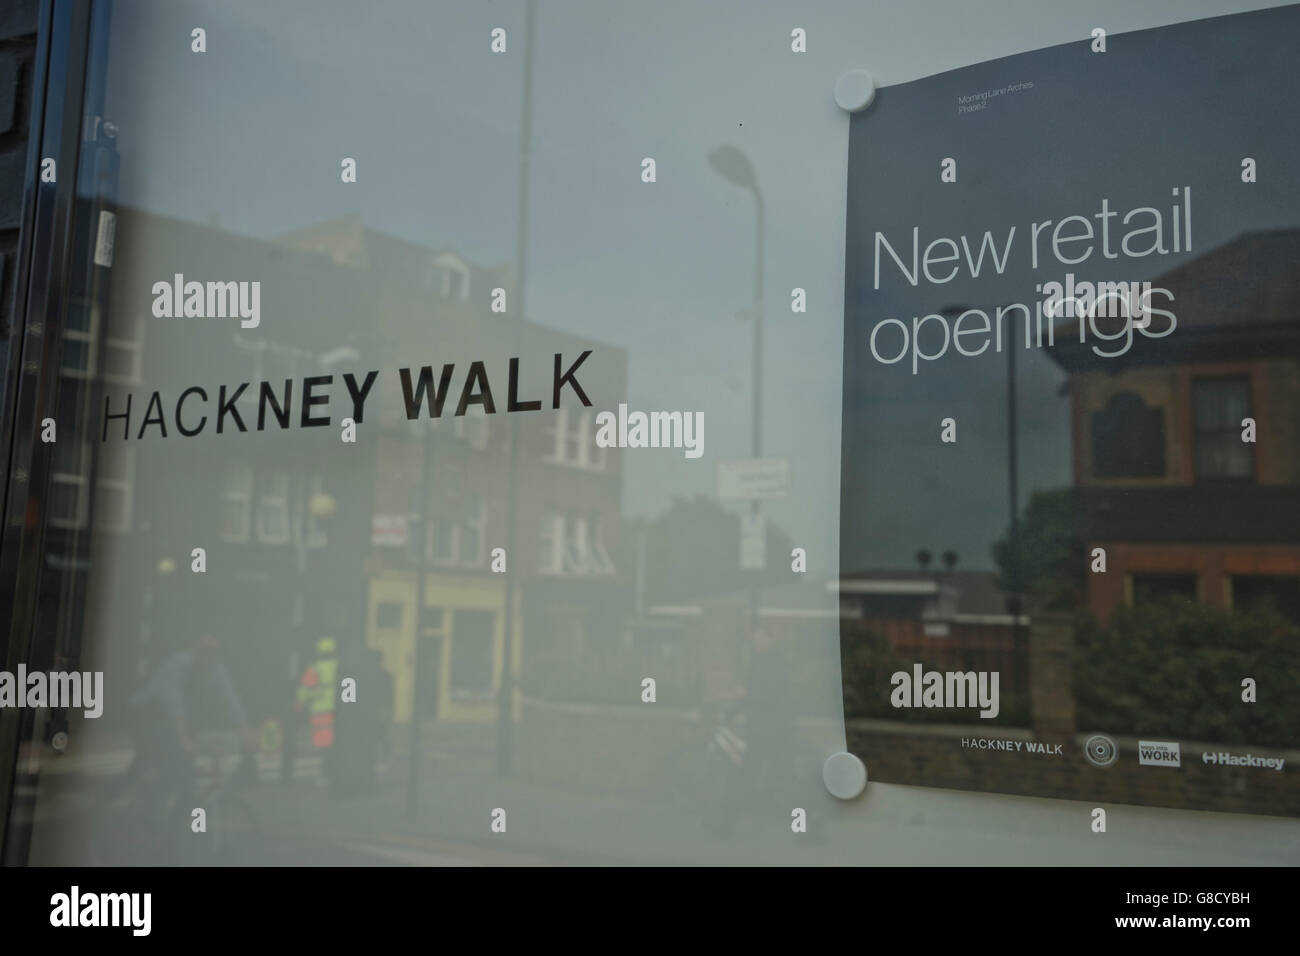 New brand retail outlets in Hackney, east London, UK - Stock Image